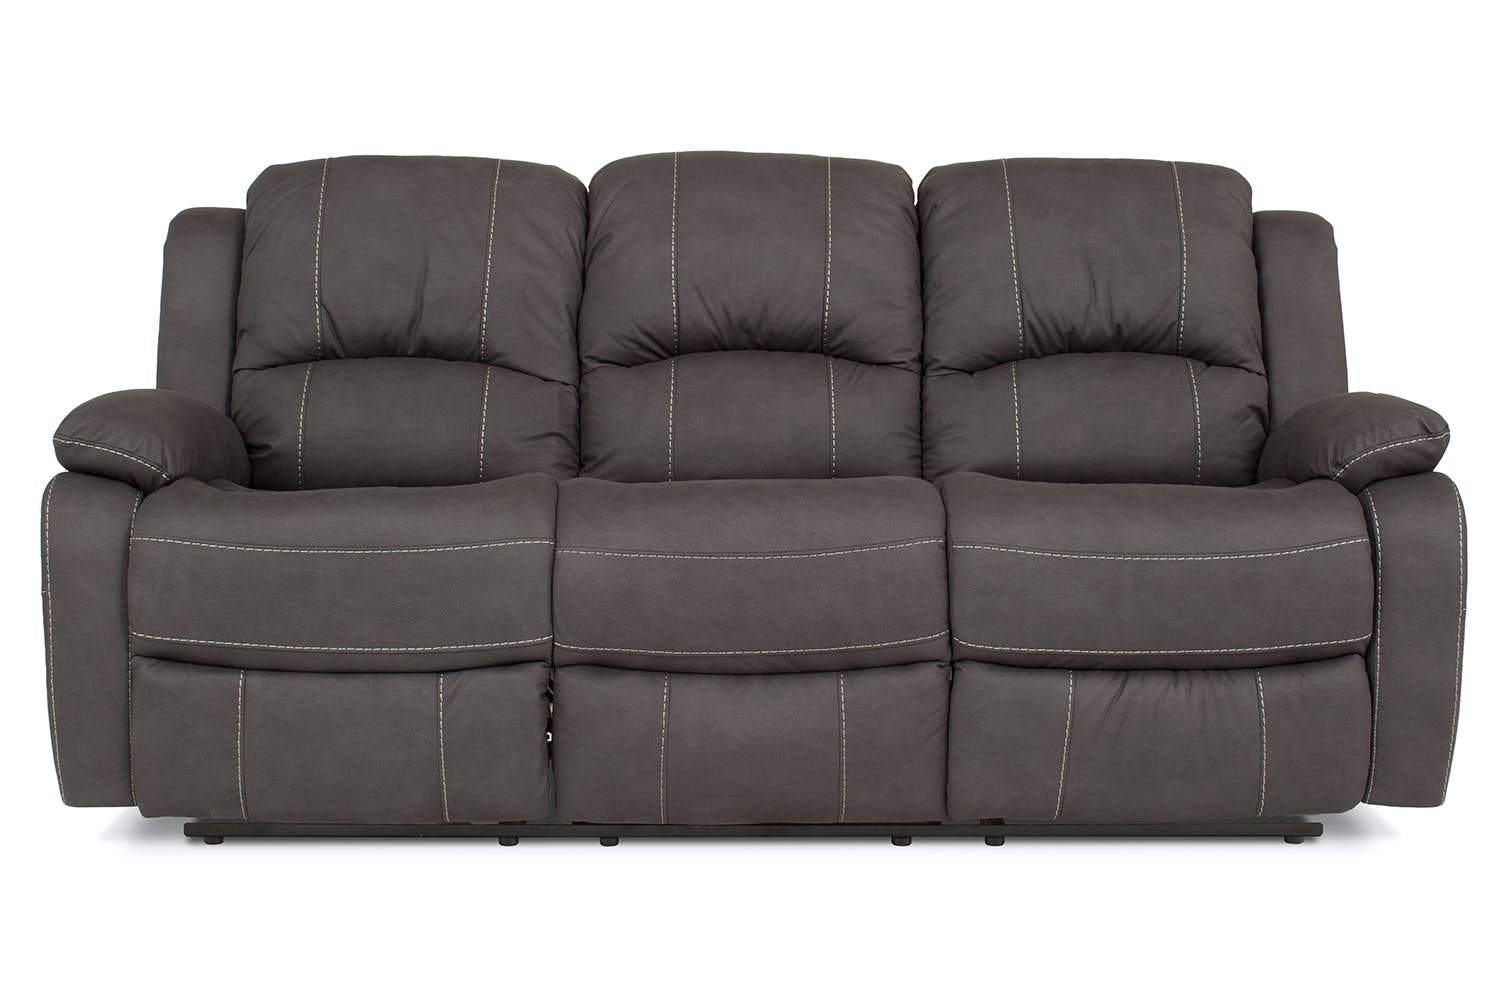 Marvelous Recliner Sofas Harvey Norman Ireland Pdpeps Interior Chair Design Pdpepsorg